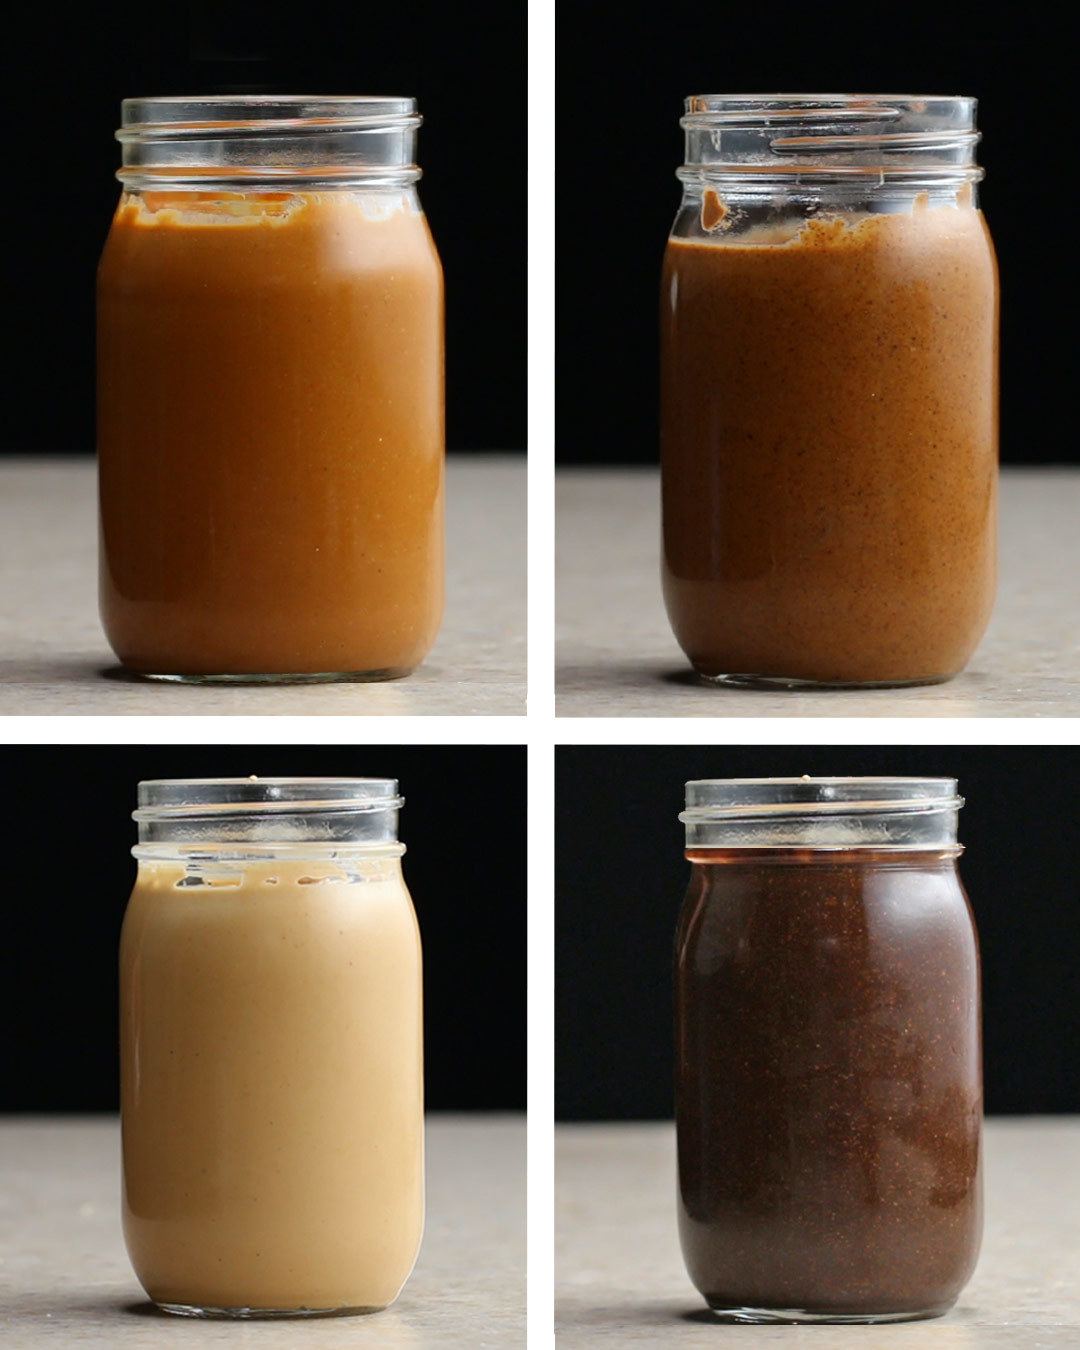 Stop Spending A Fortune On Expensive Nut Butters And Make It At Home With These Easy Recipes